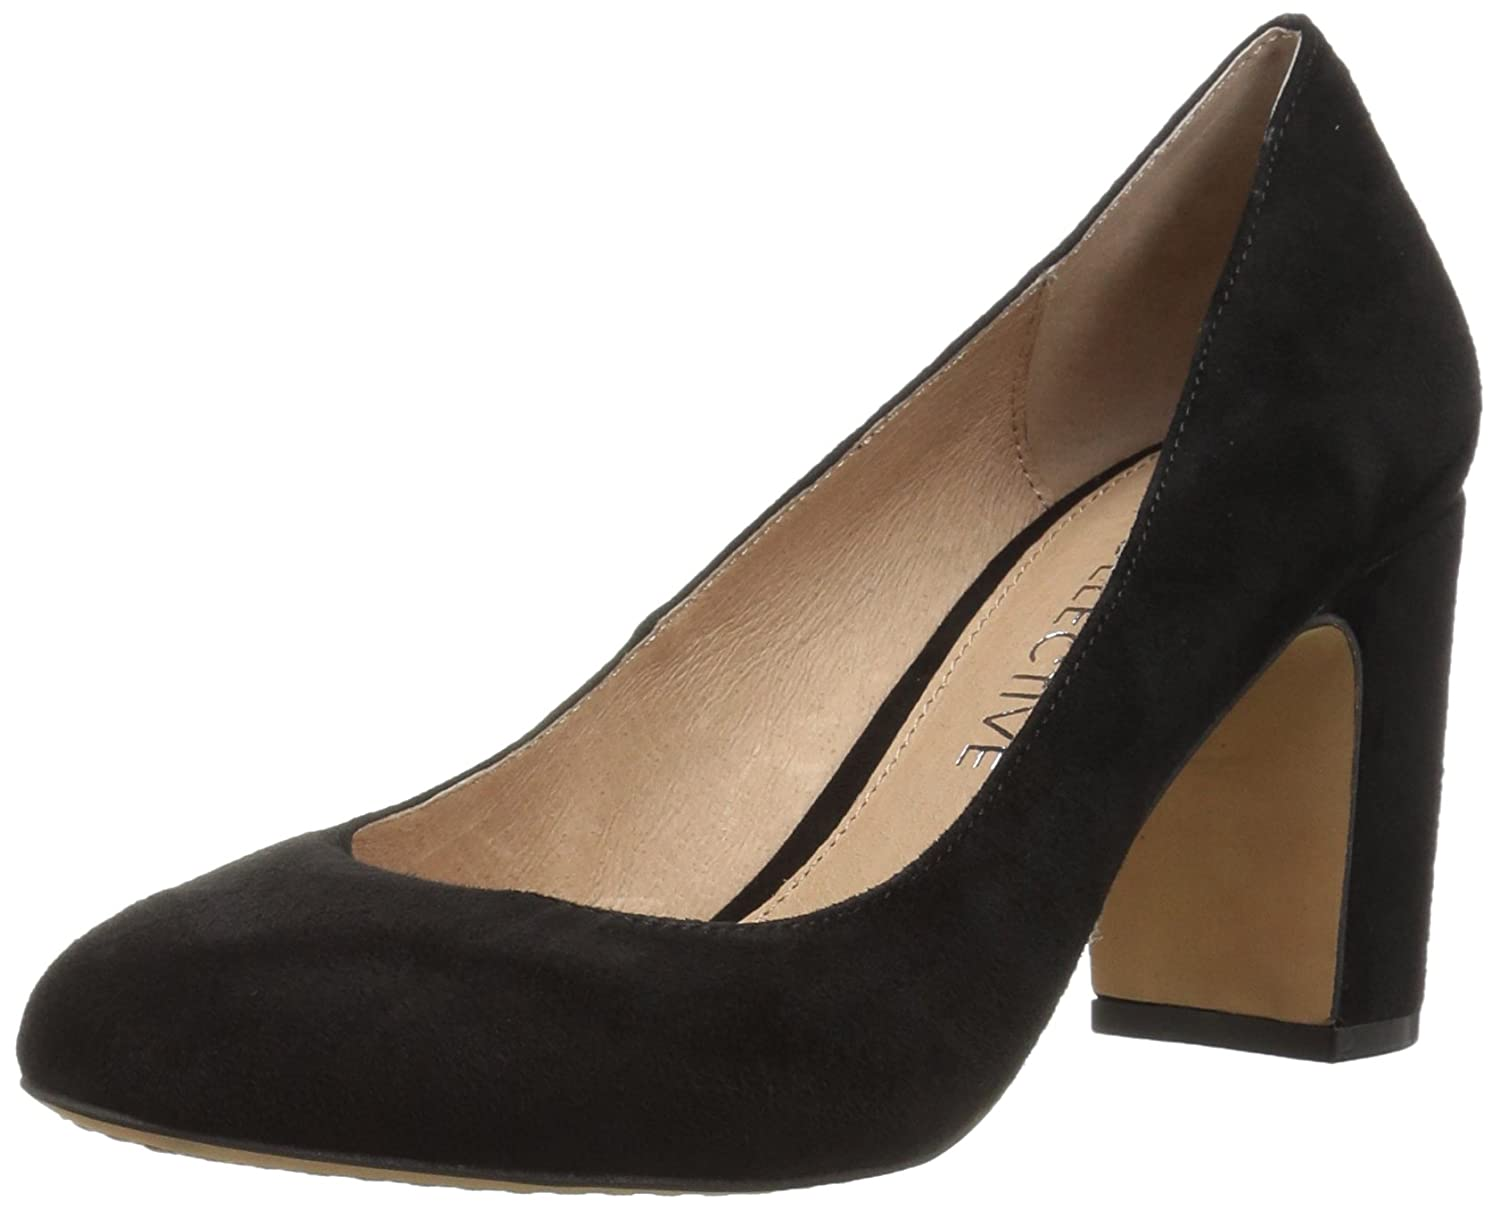 206 Collective Women's Coyle Round Toe Block Heel High Pump B0789529N2 9.5 B(M) US|Black Suede